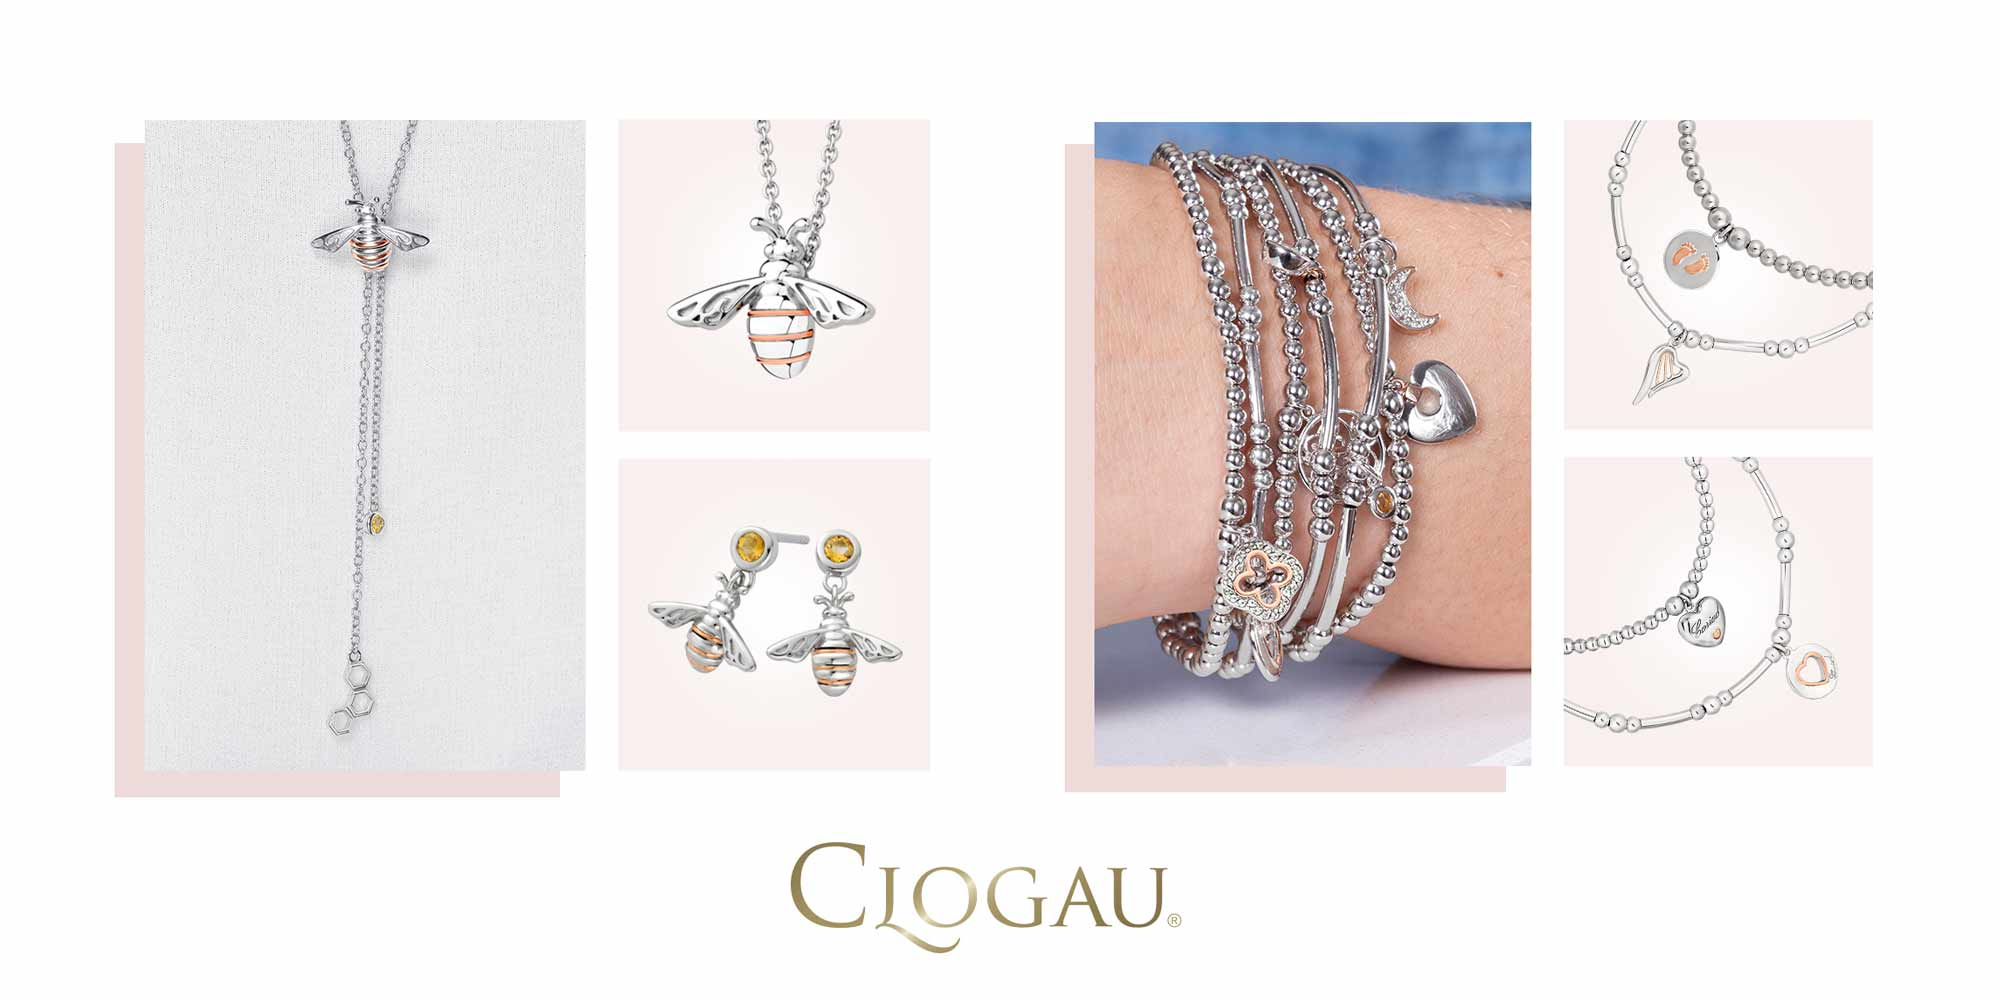 Clogau, Buy Online, Clogau Online, Drakes Jewellers, Plymouth, Clogau new collection